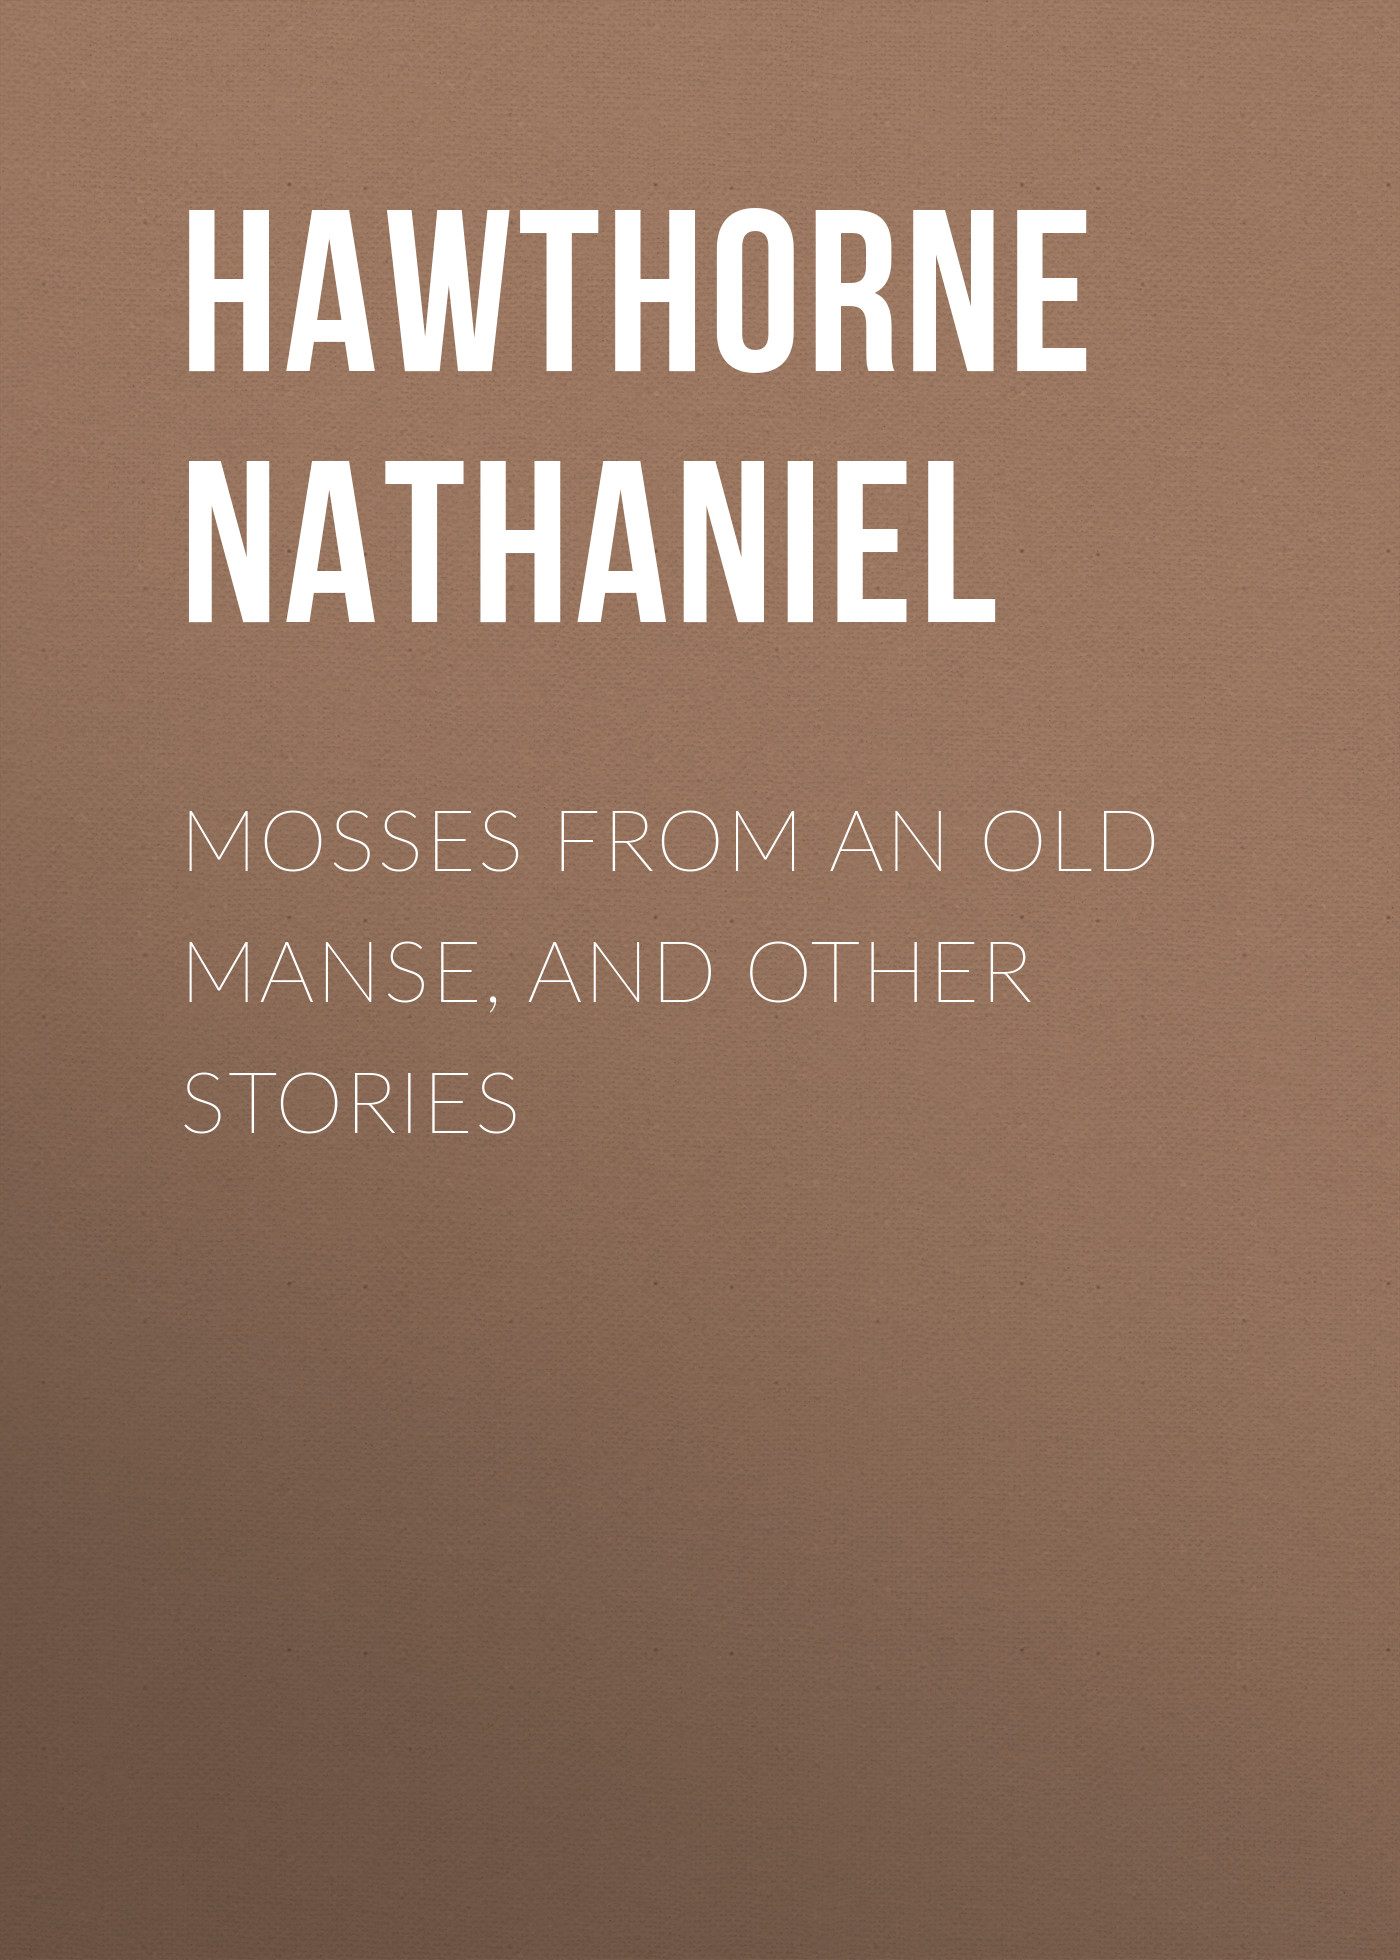 Hawthorne Nathaniel Mosses from an Old Manse, and Other Stories цена